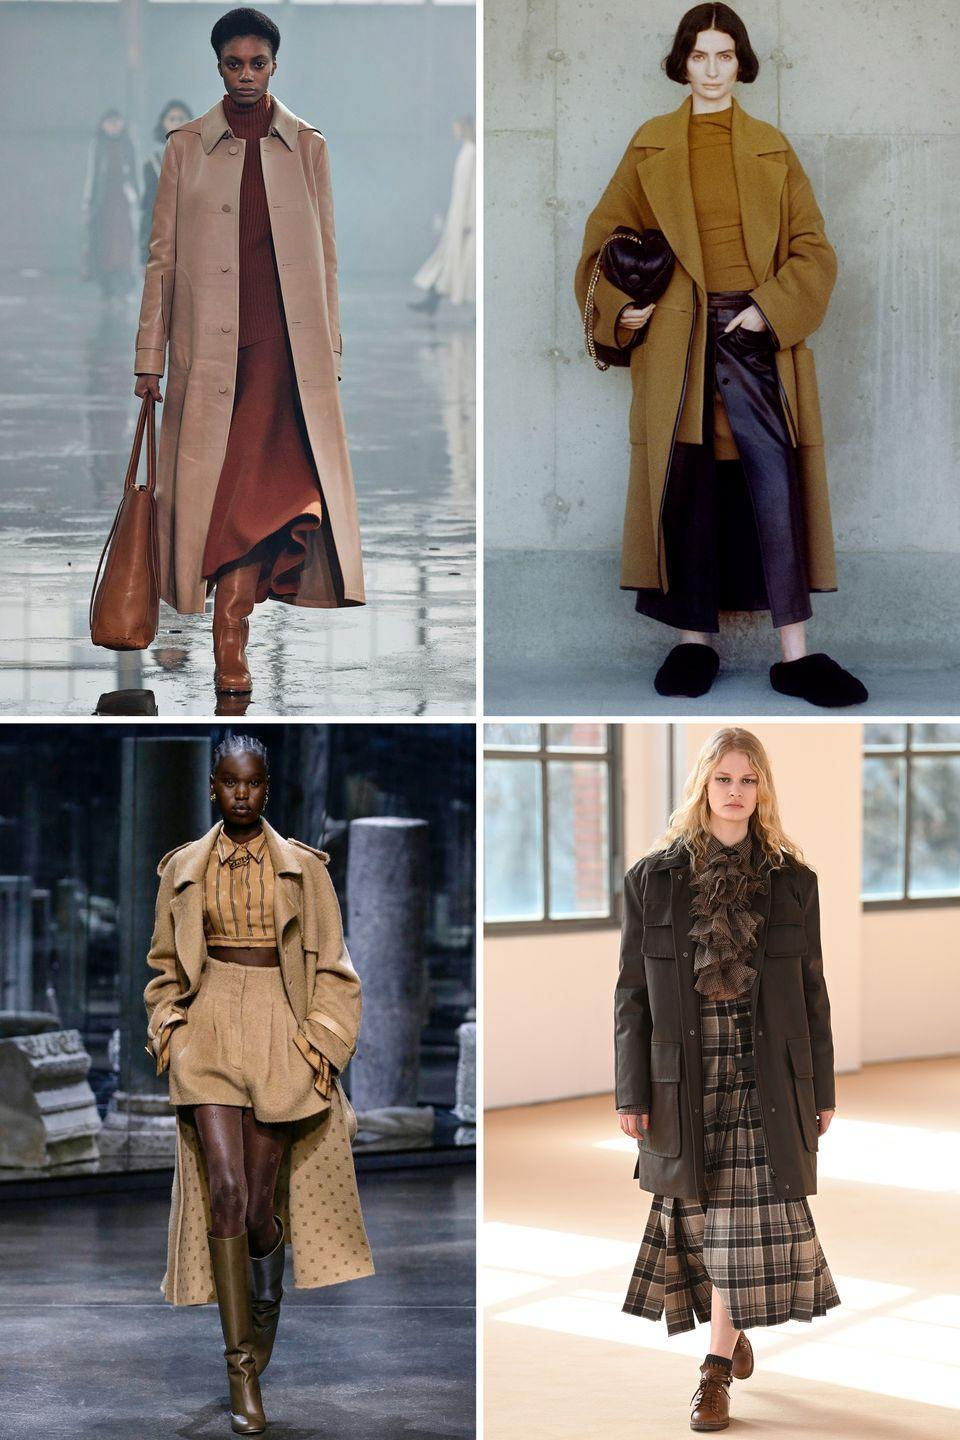 <p>Monochromatic earth tones worn head-to-toe grounded daywear with a warmth and ease that looks and feels luxurious. </p><p><strong>Insider tip:</strong> Try mixing textures in the same color family and lighter and darker tones for a more dimensional take on the trend.</p><p><em>Pictured: Gabriela Hearst, Proenza Schouler, Fendi, Max Mara</em></p>